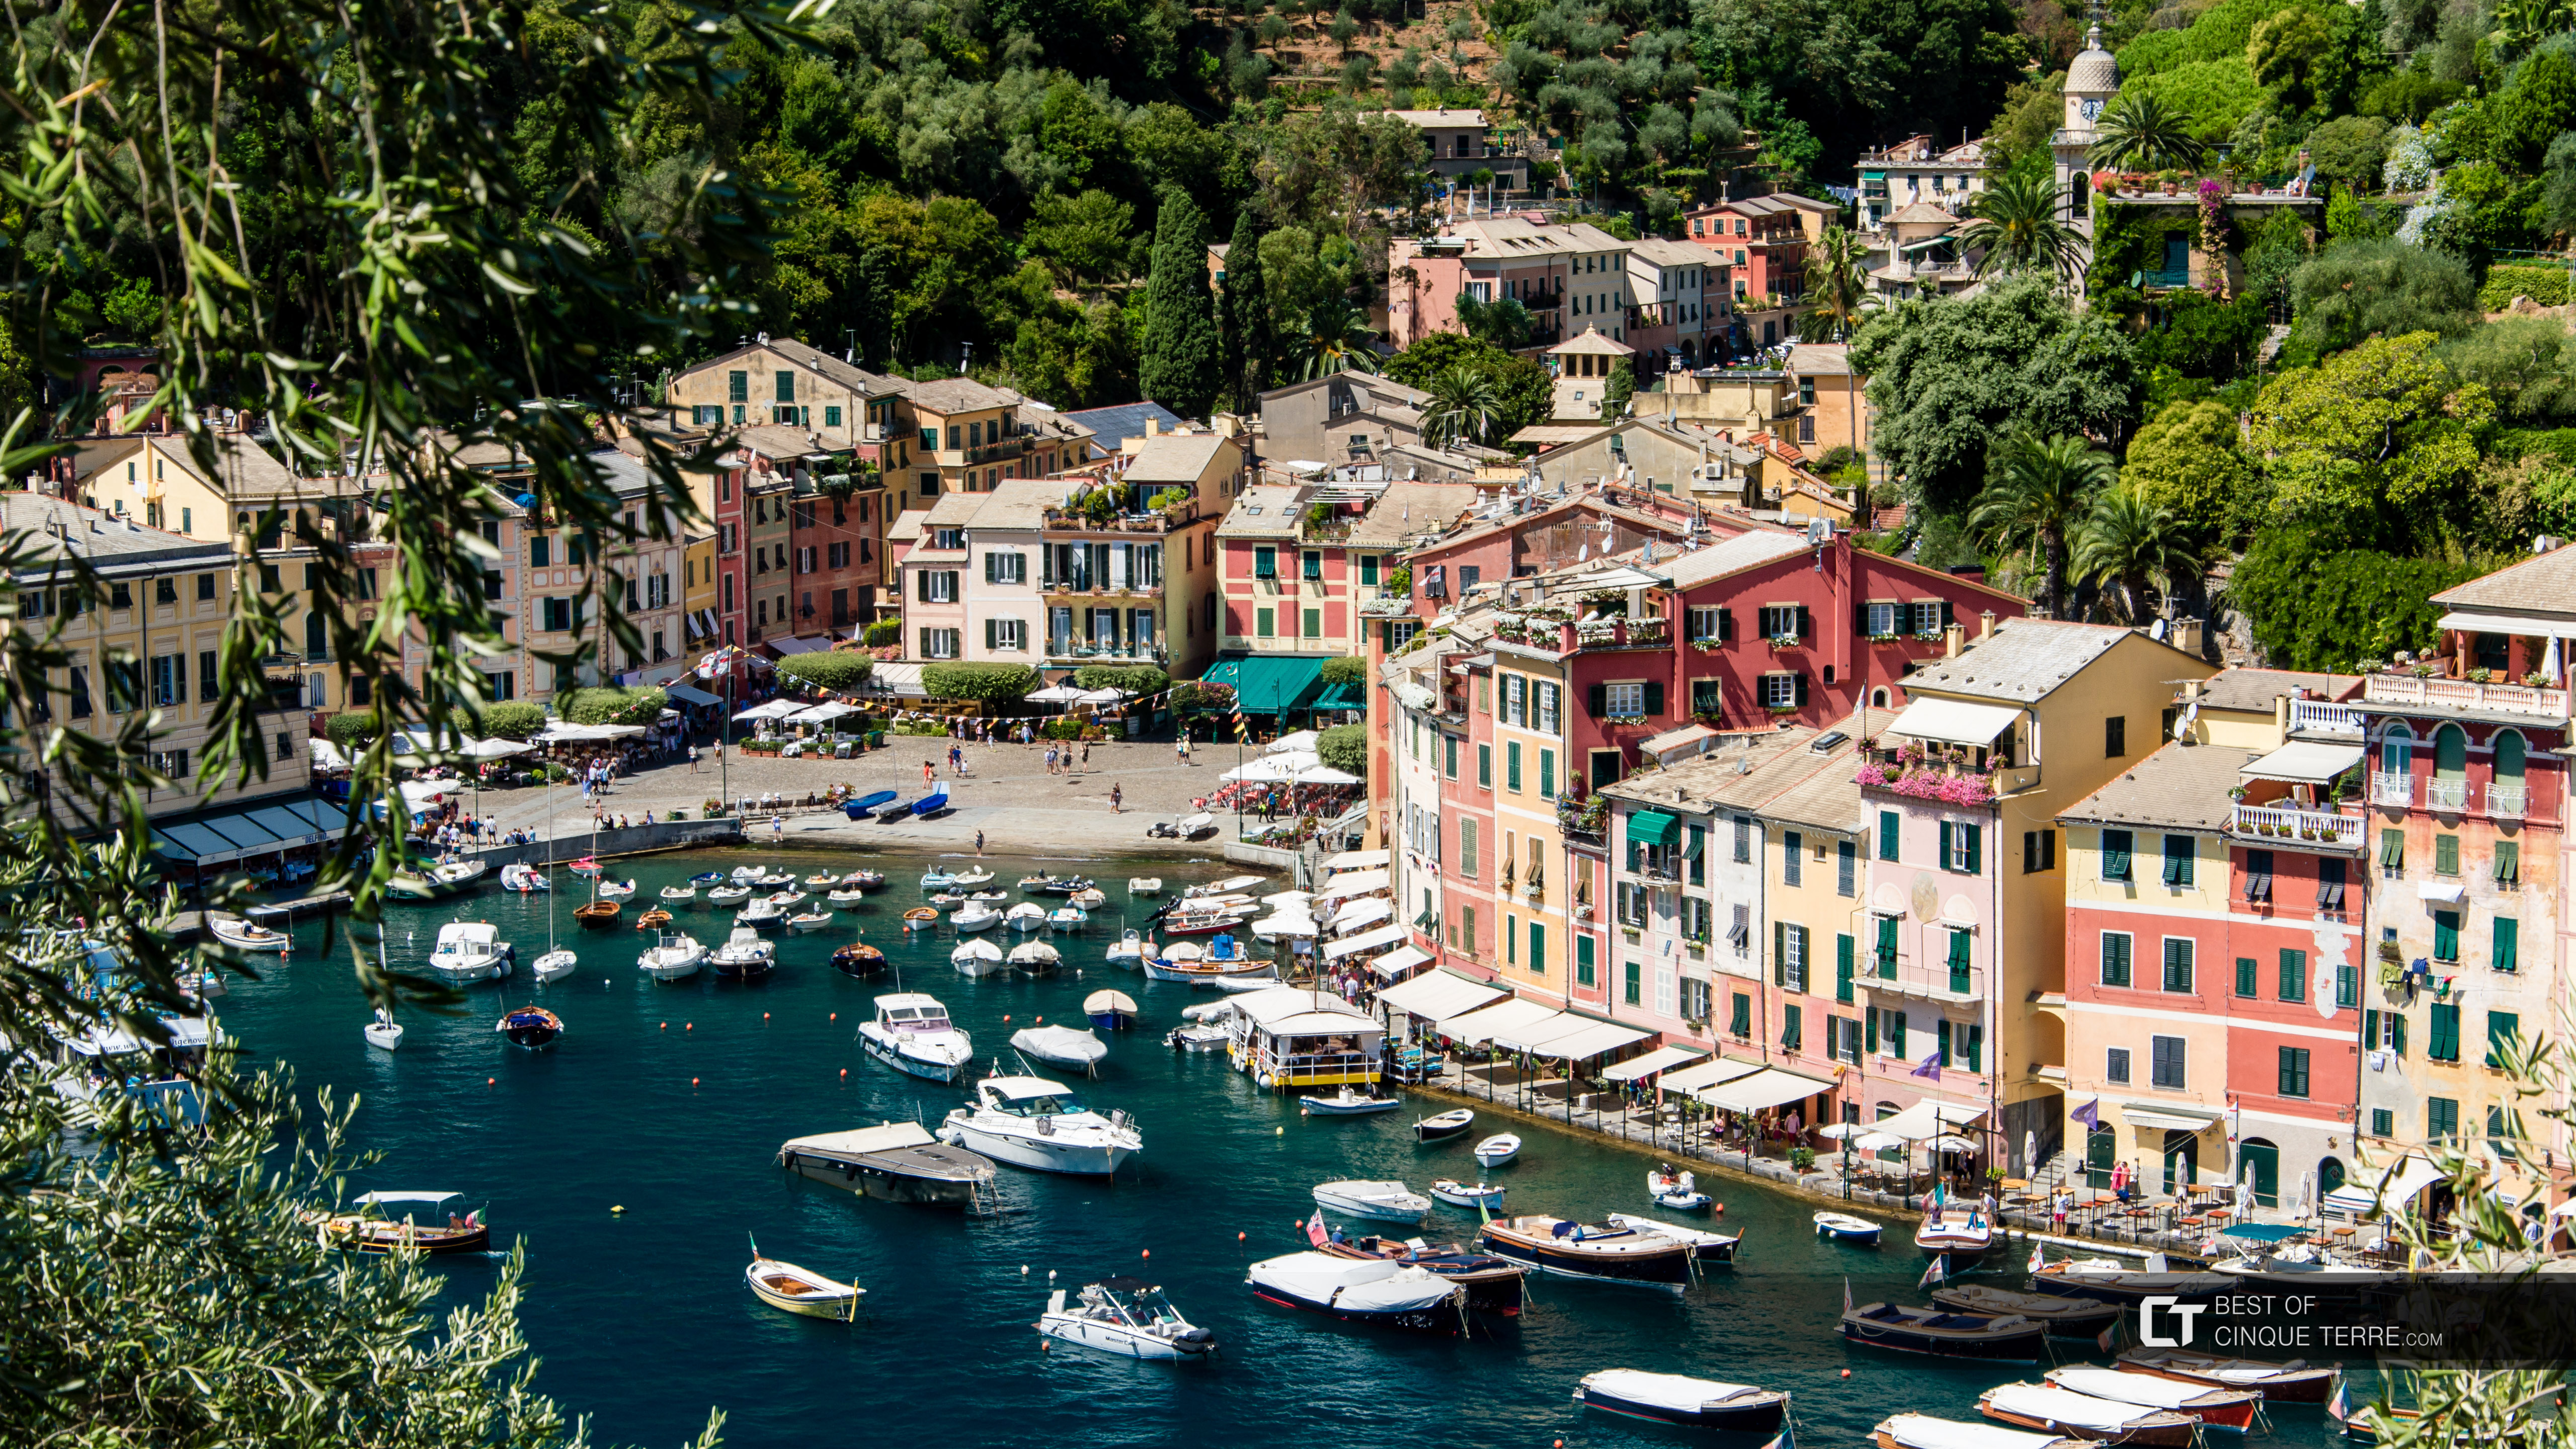 Piazza Martiri dell'Olivetta, seen from the gardens of Brown Castle, Portofino, Italy